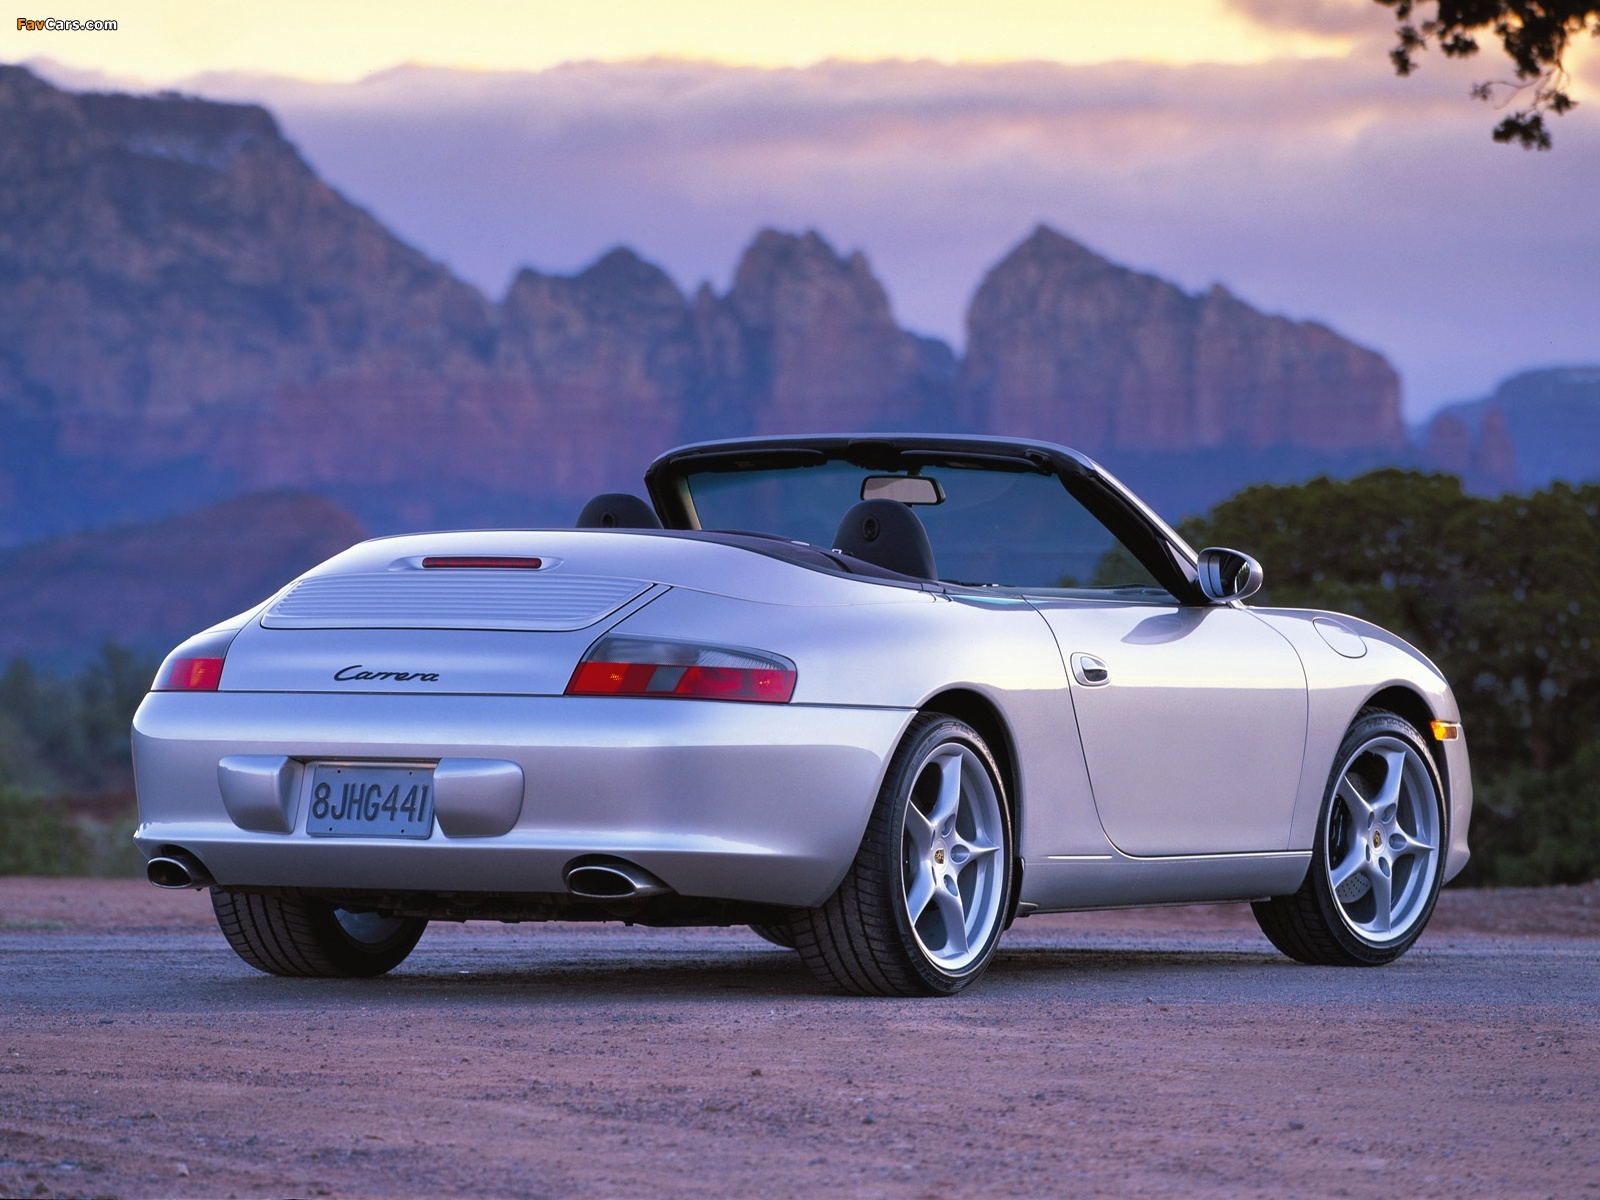 Photos Of Porsche 911 Carrera Cabriolet Us Spec 996 2001